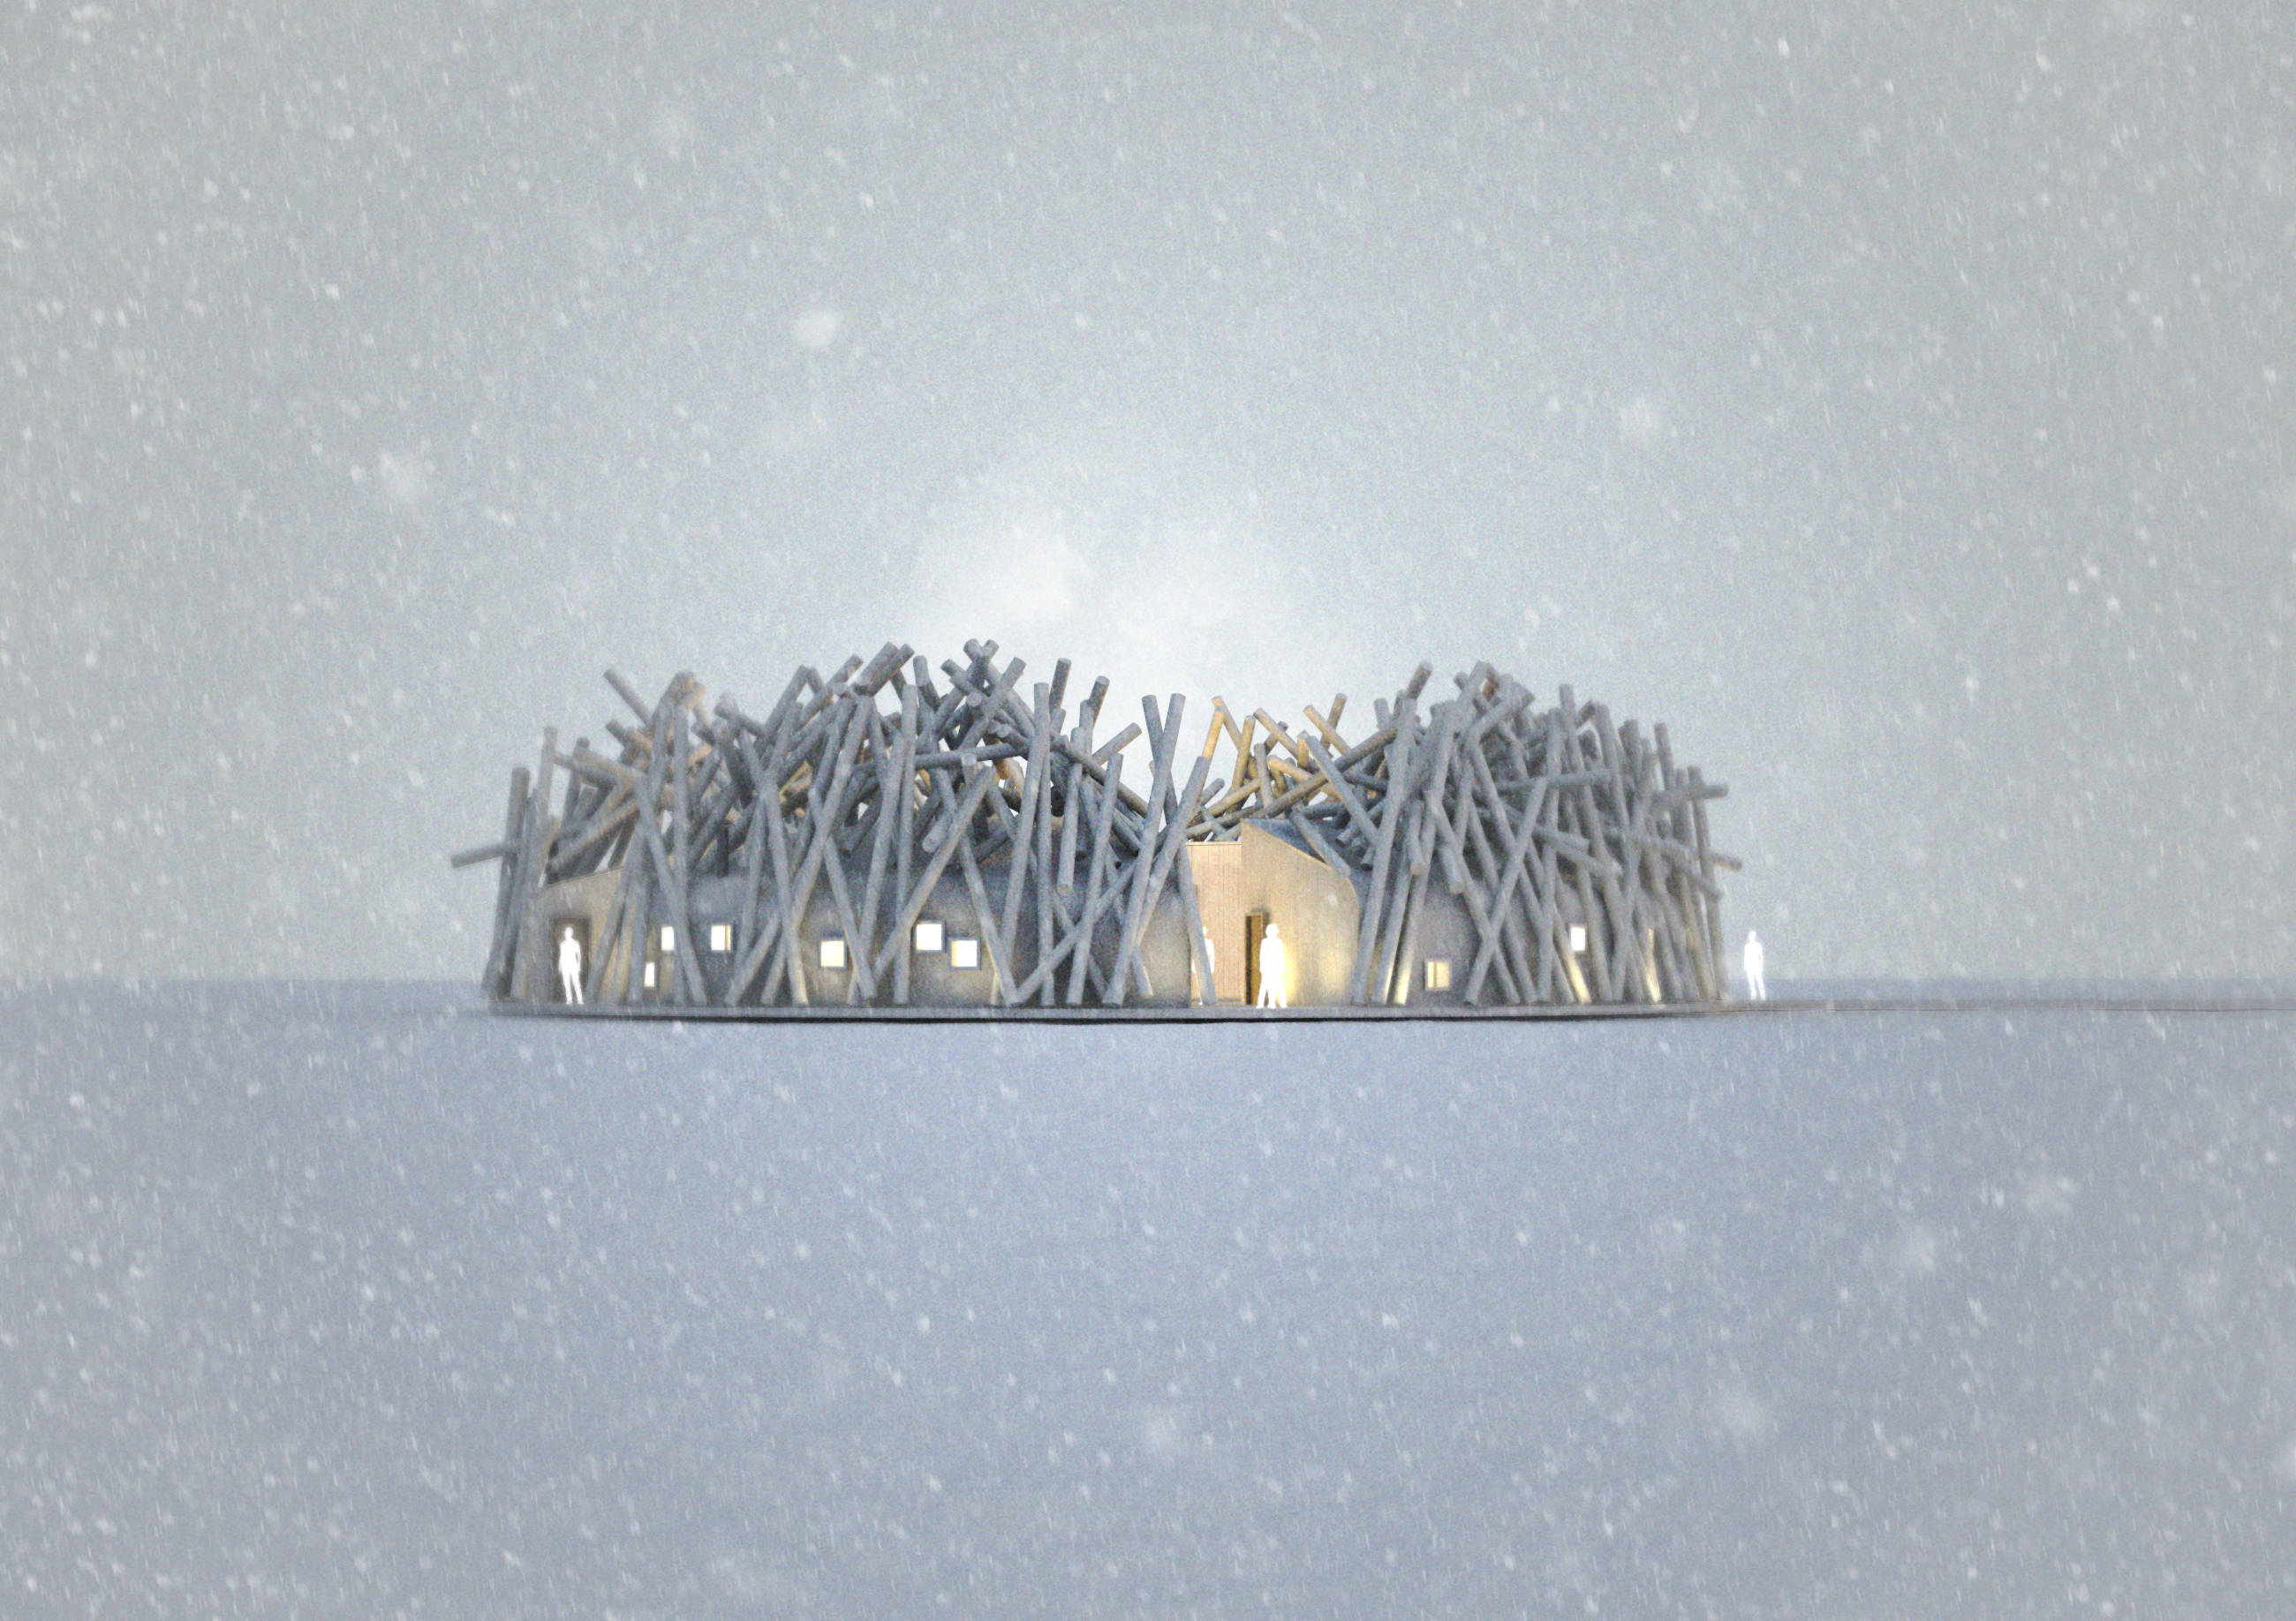 Rendering of the side view of The Arctic Bath Hotel and Spa in the winter.